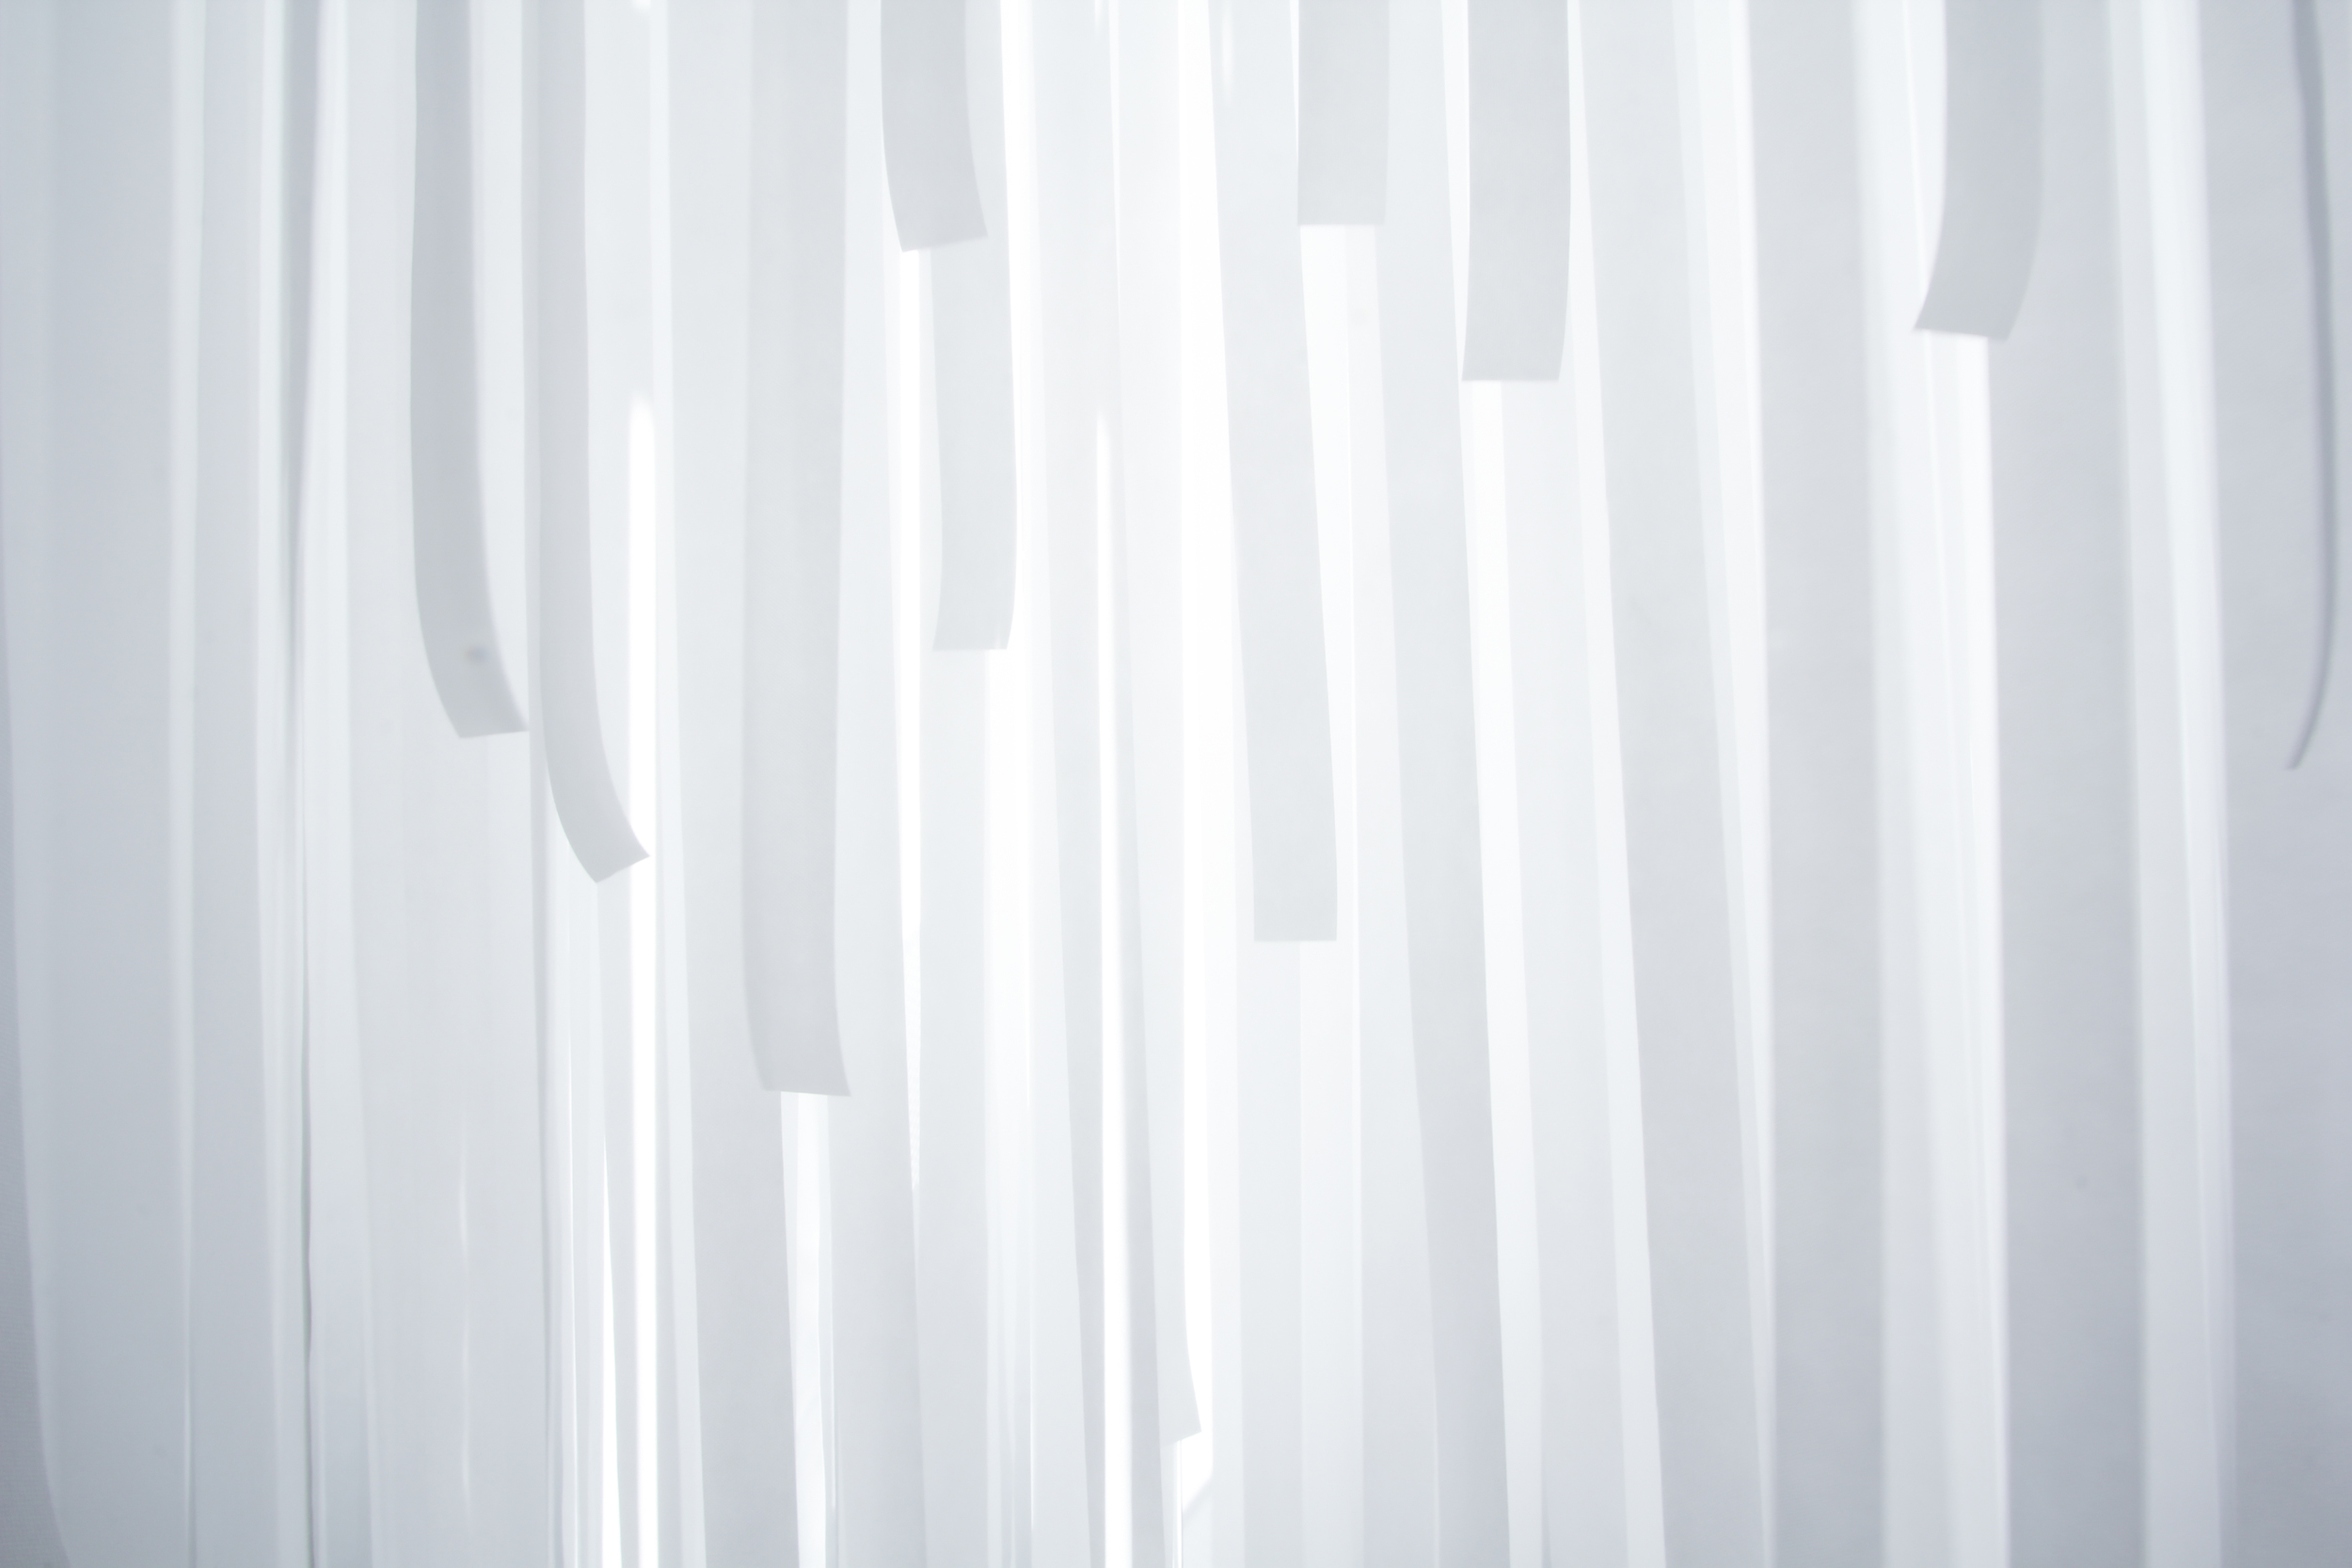 Layered of stripes. COS x Snarkitecture.image ©futurecrafter